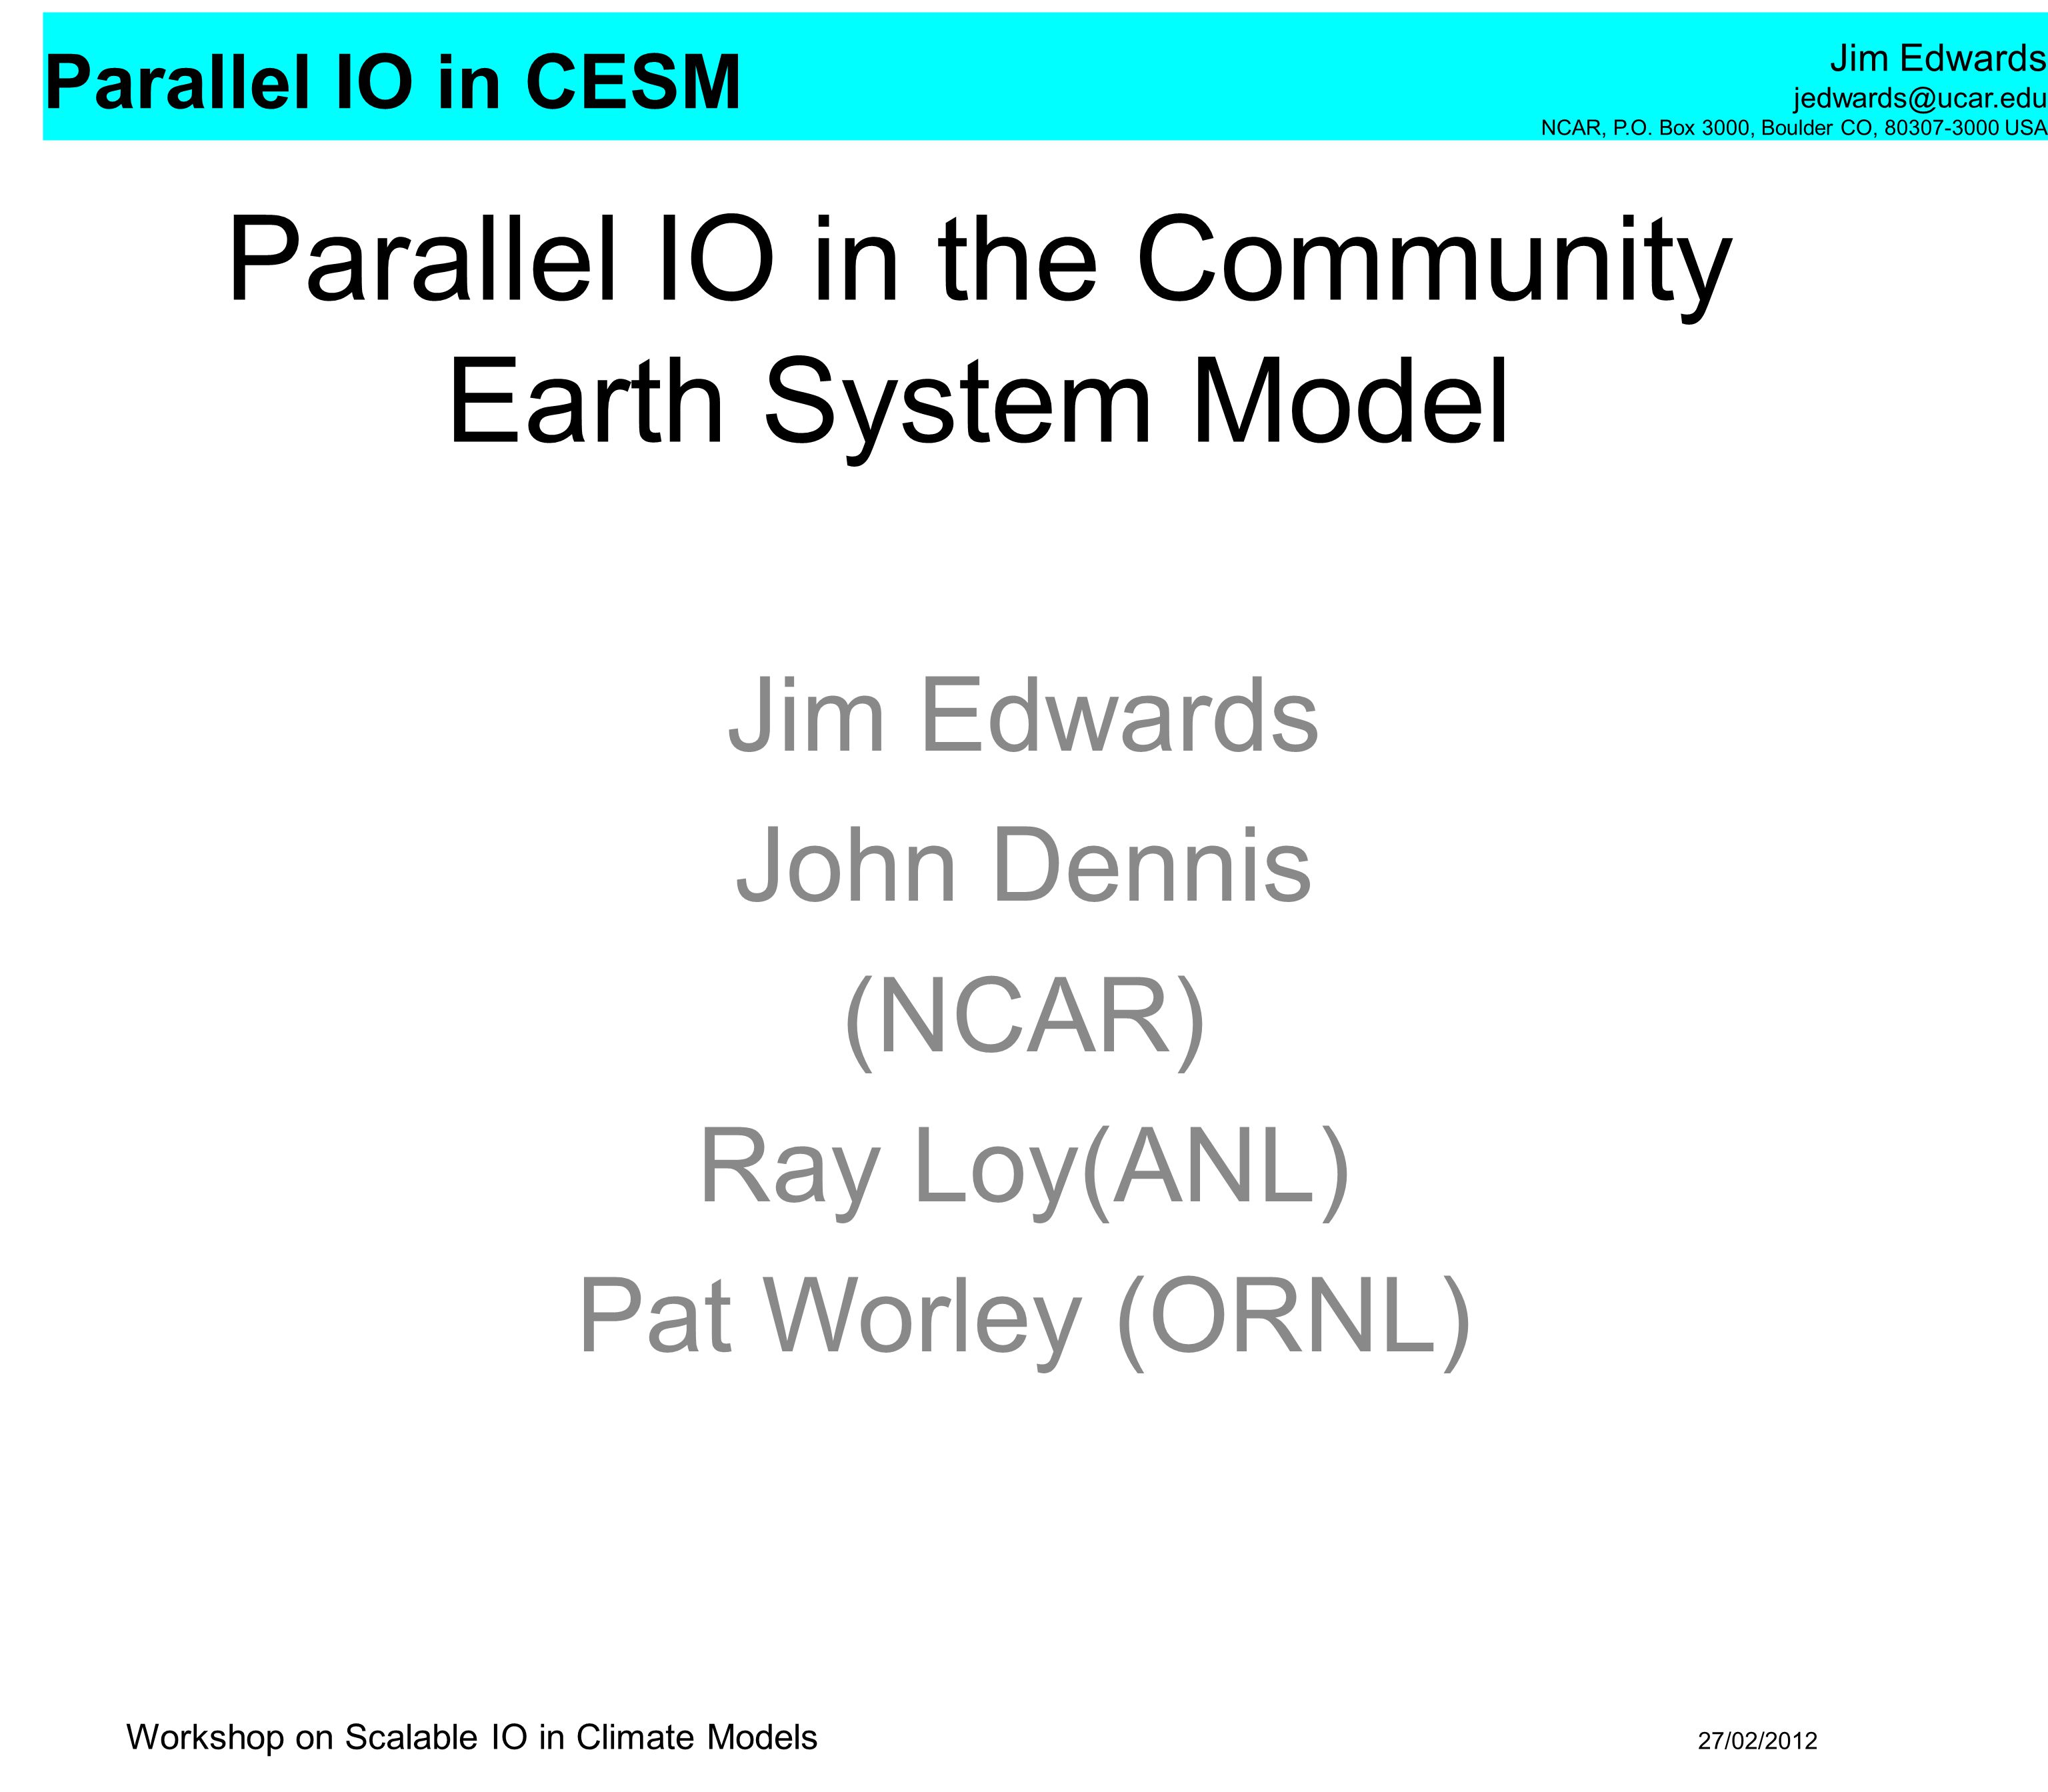 Parallel IO in the Community Earth System Model